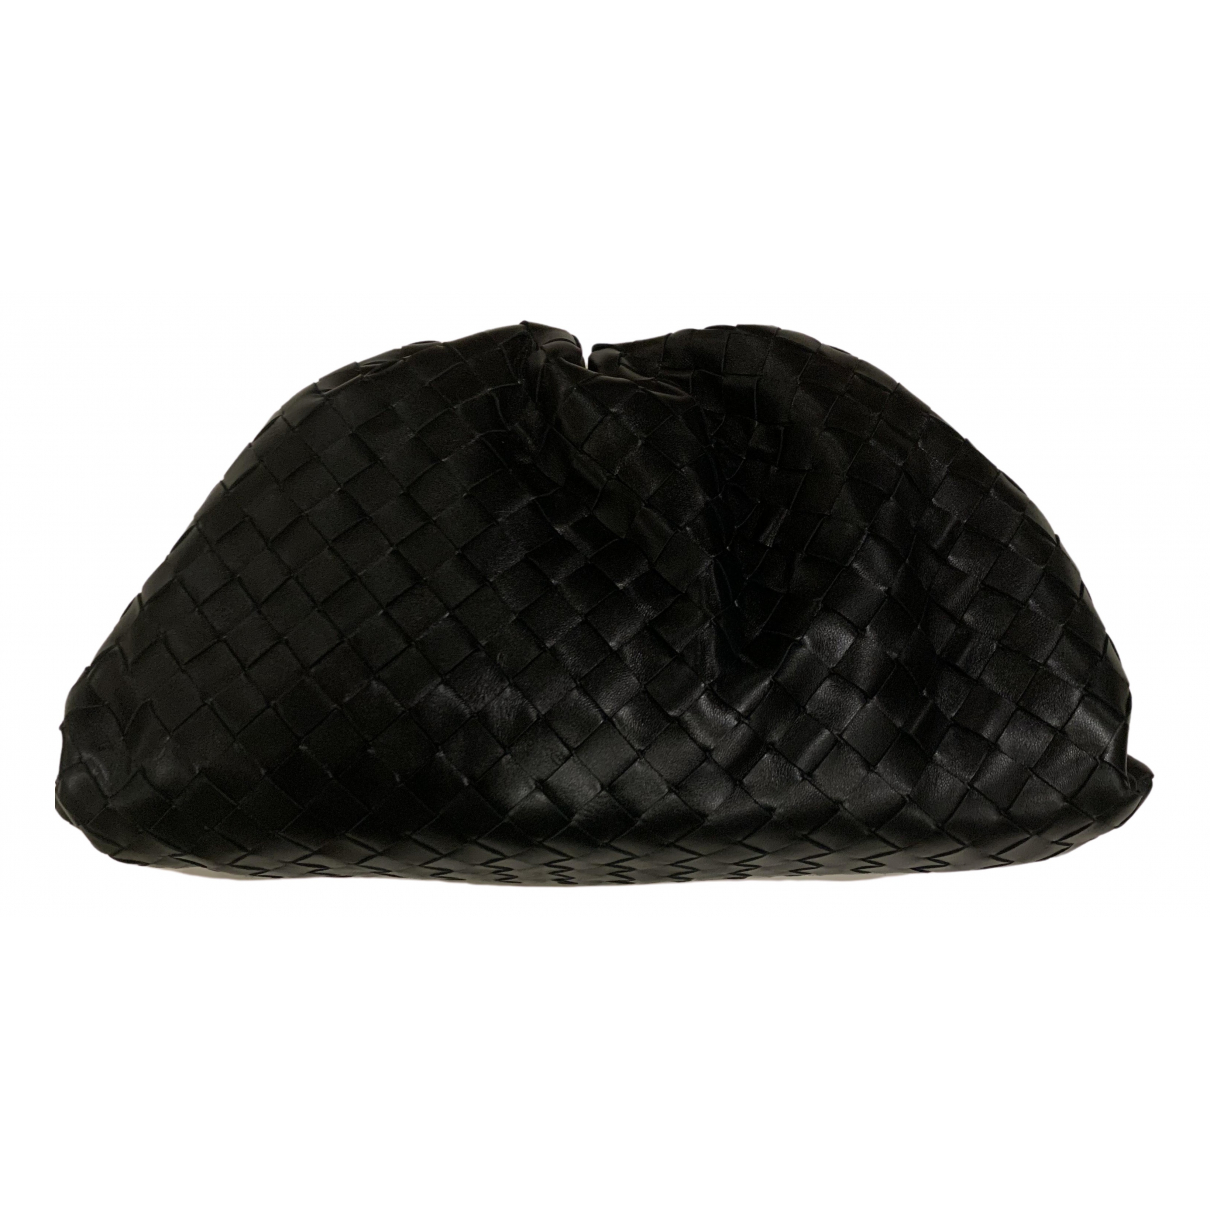 Bottega Veneta Pouch Black Leather Clutch bag for Women \N